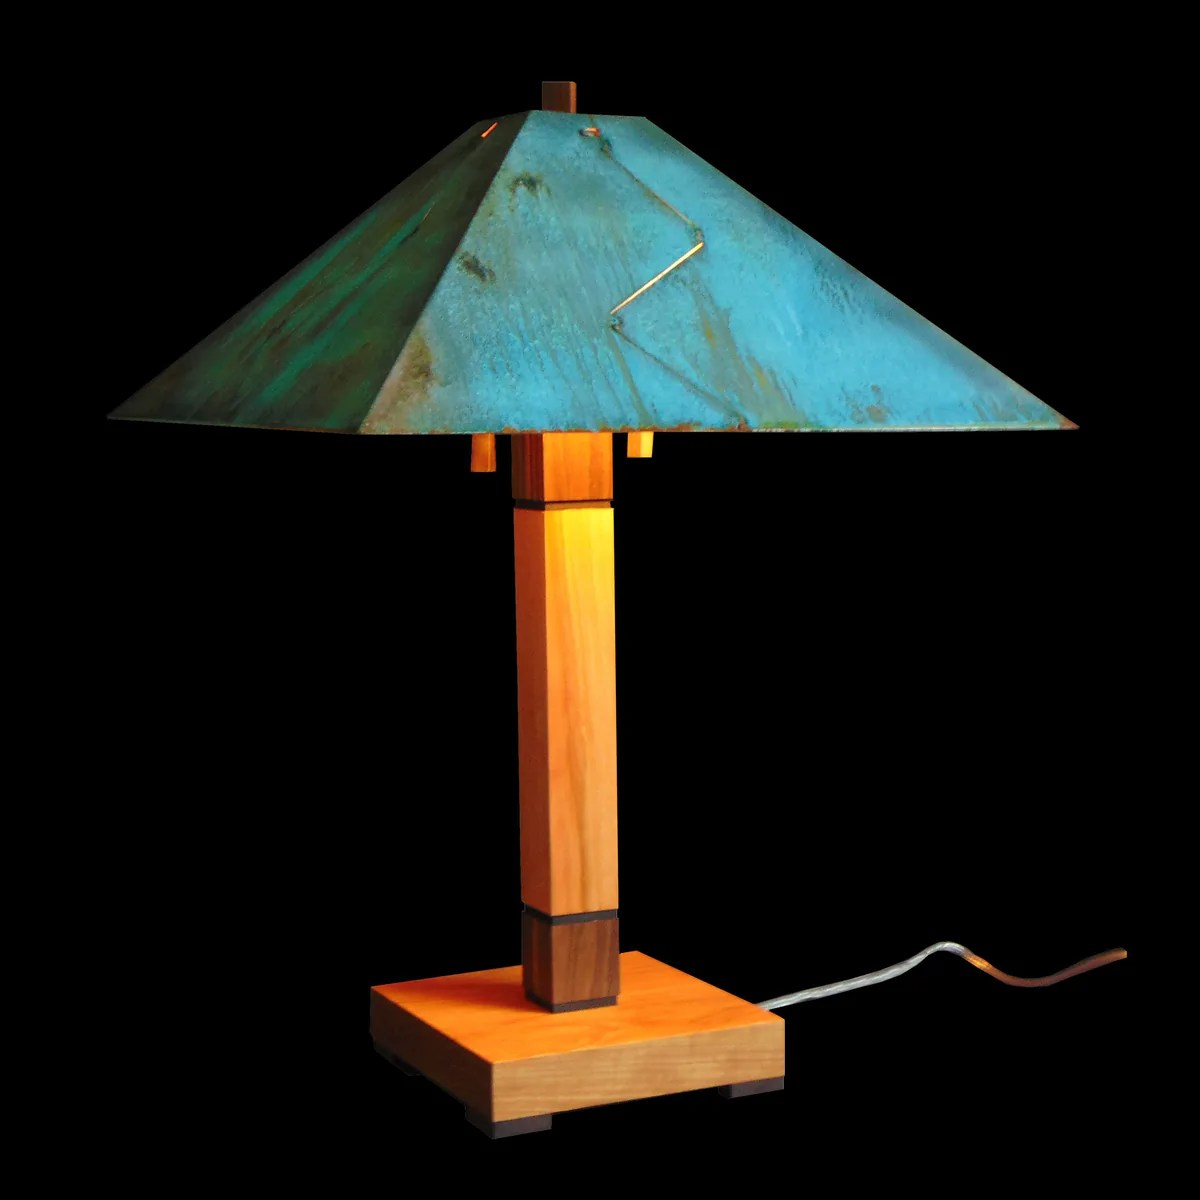 Franz Gt Kessler Designs Lamps Mission Lamps Arts And